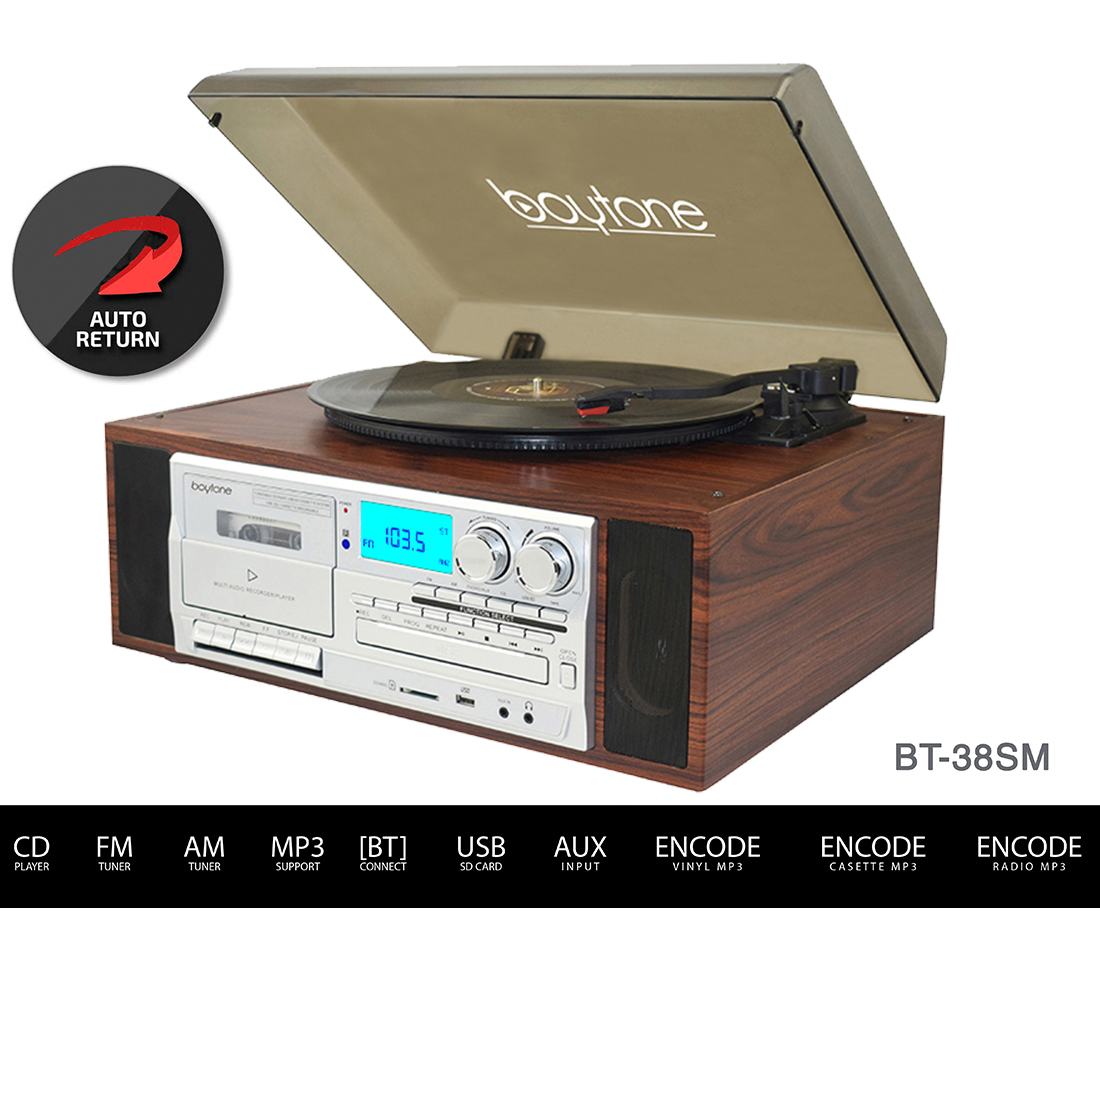 Boytone BT-38SM, Bluetooth Classic Style Record Player Turntable with AM/FM Radio, CD / Cassette Player